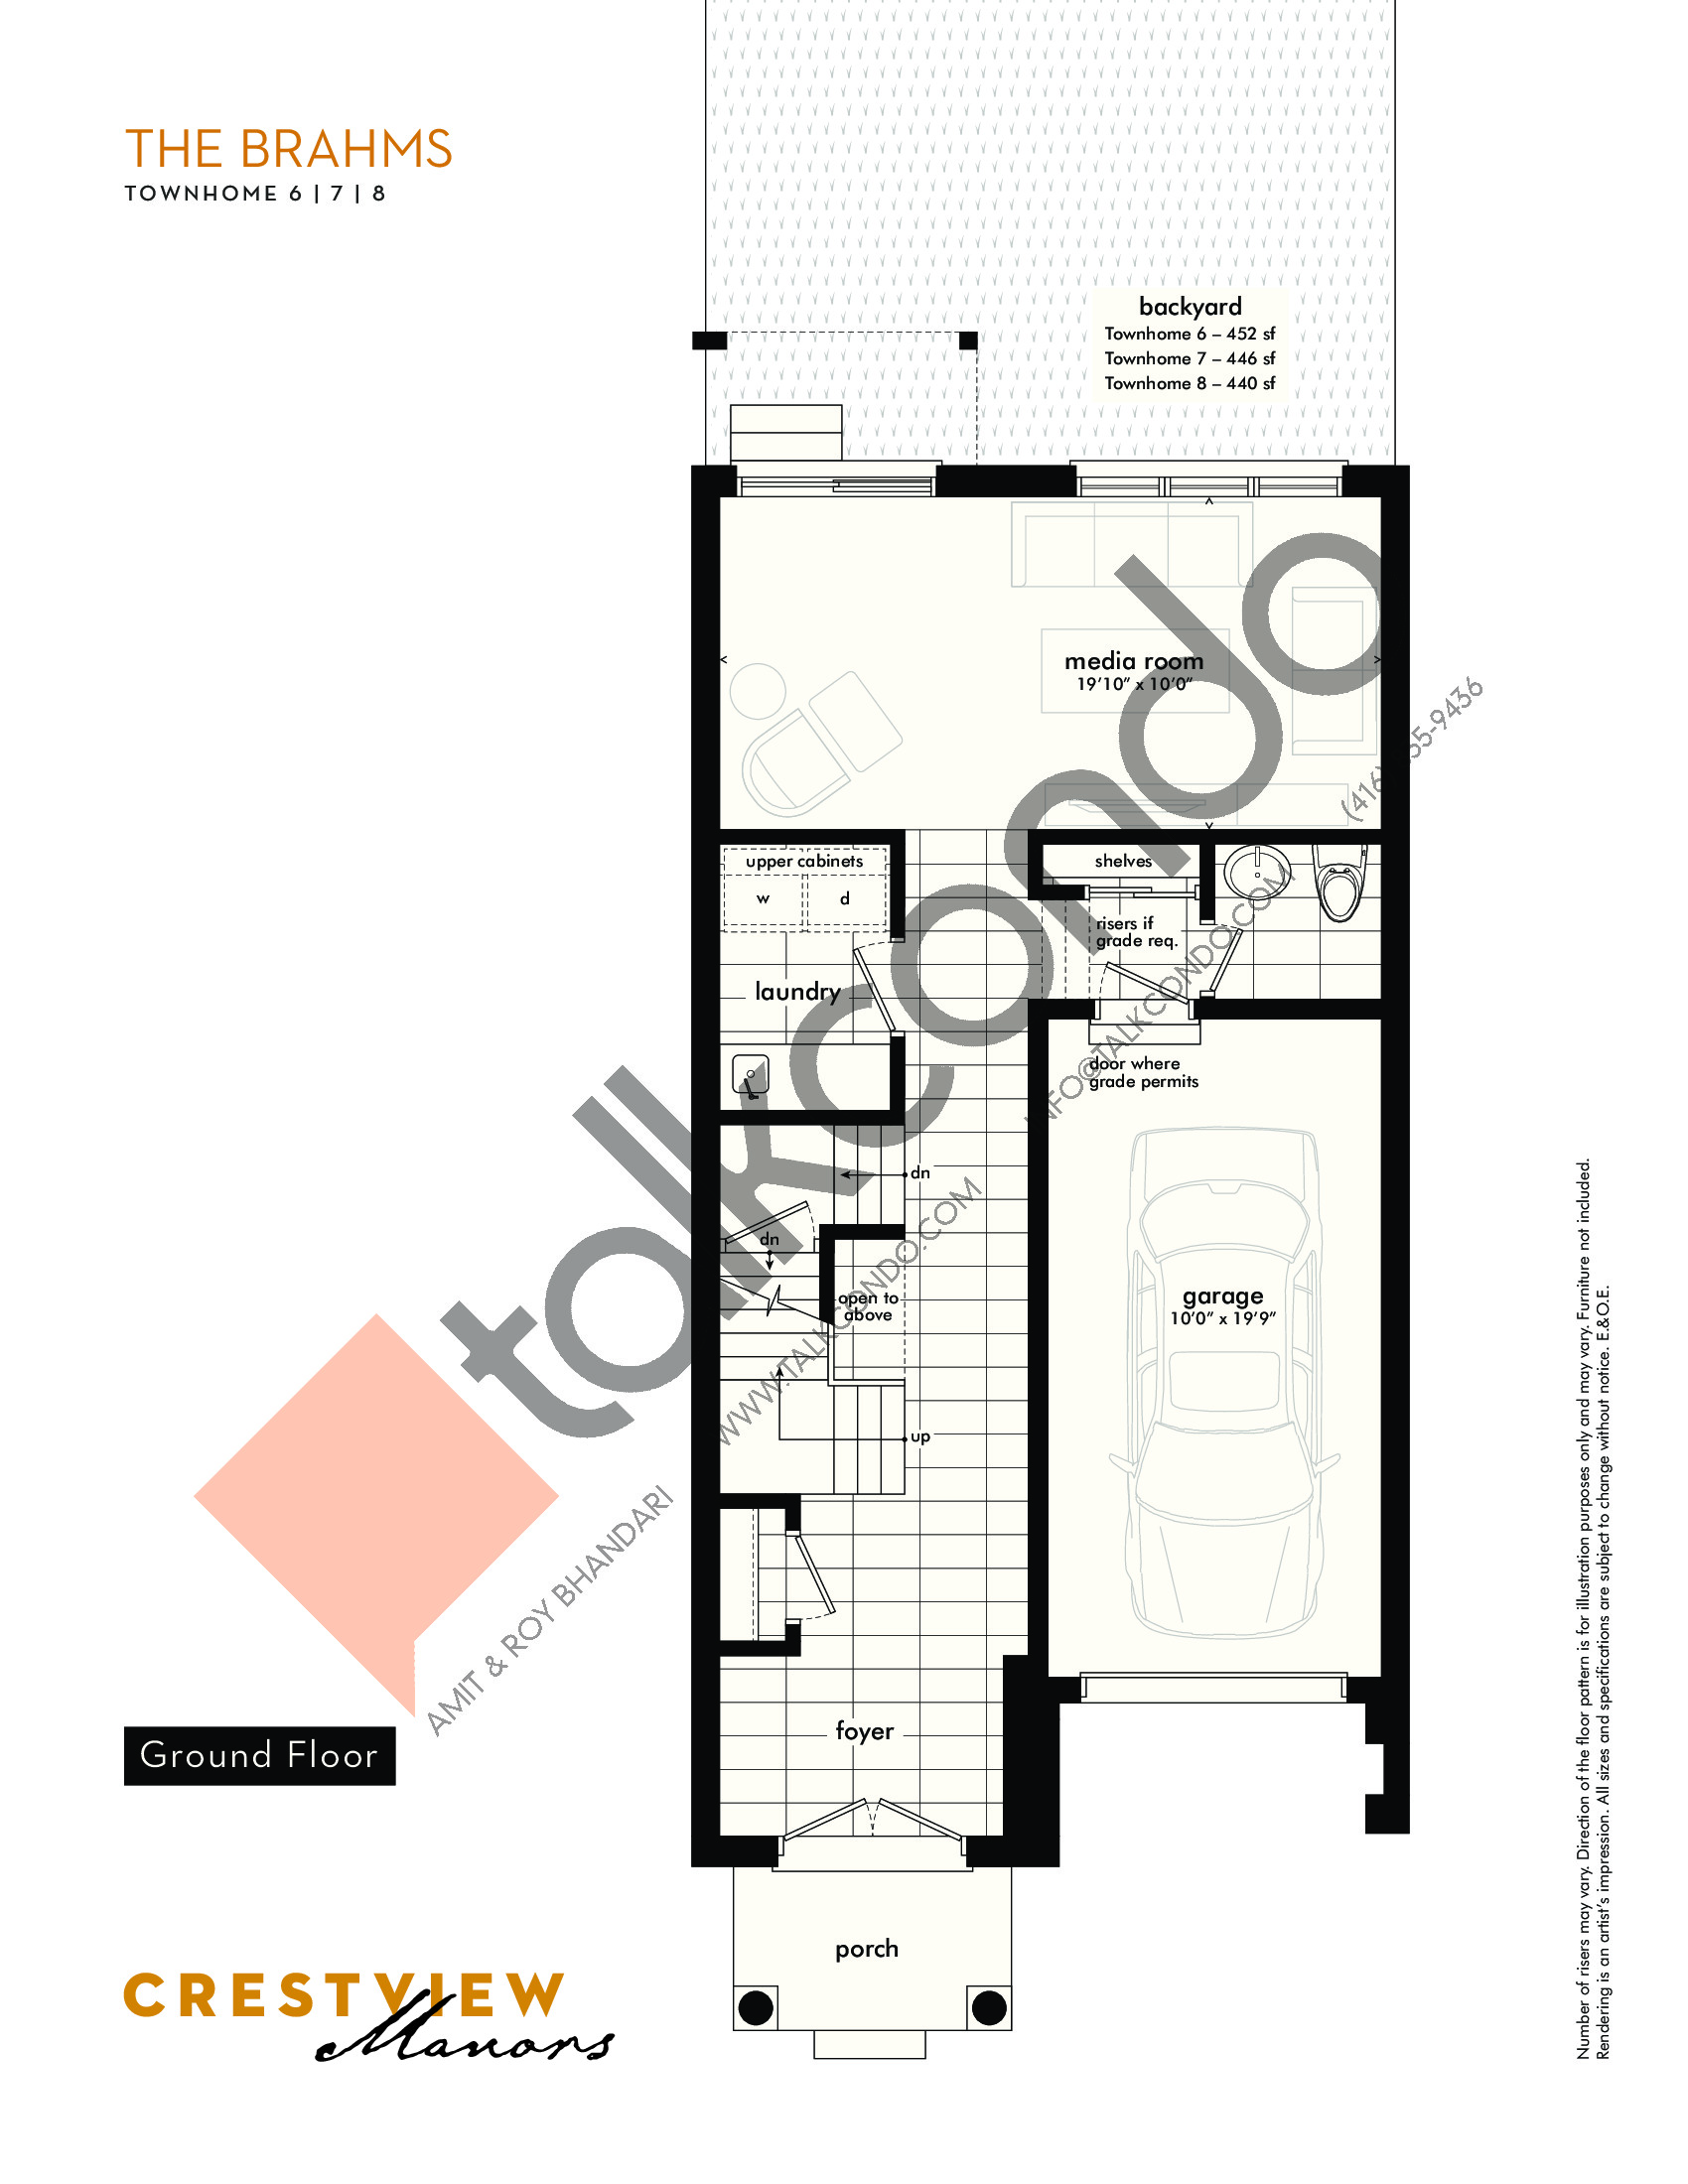 The Brahms - Ground Floor Floor Plan at Crestview Manors - 2282 sq.ft